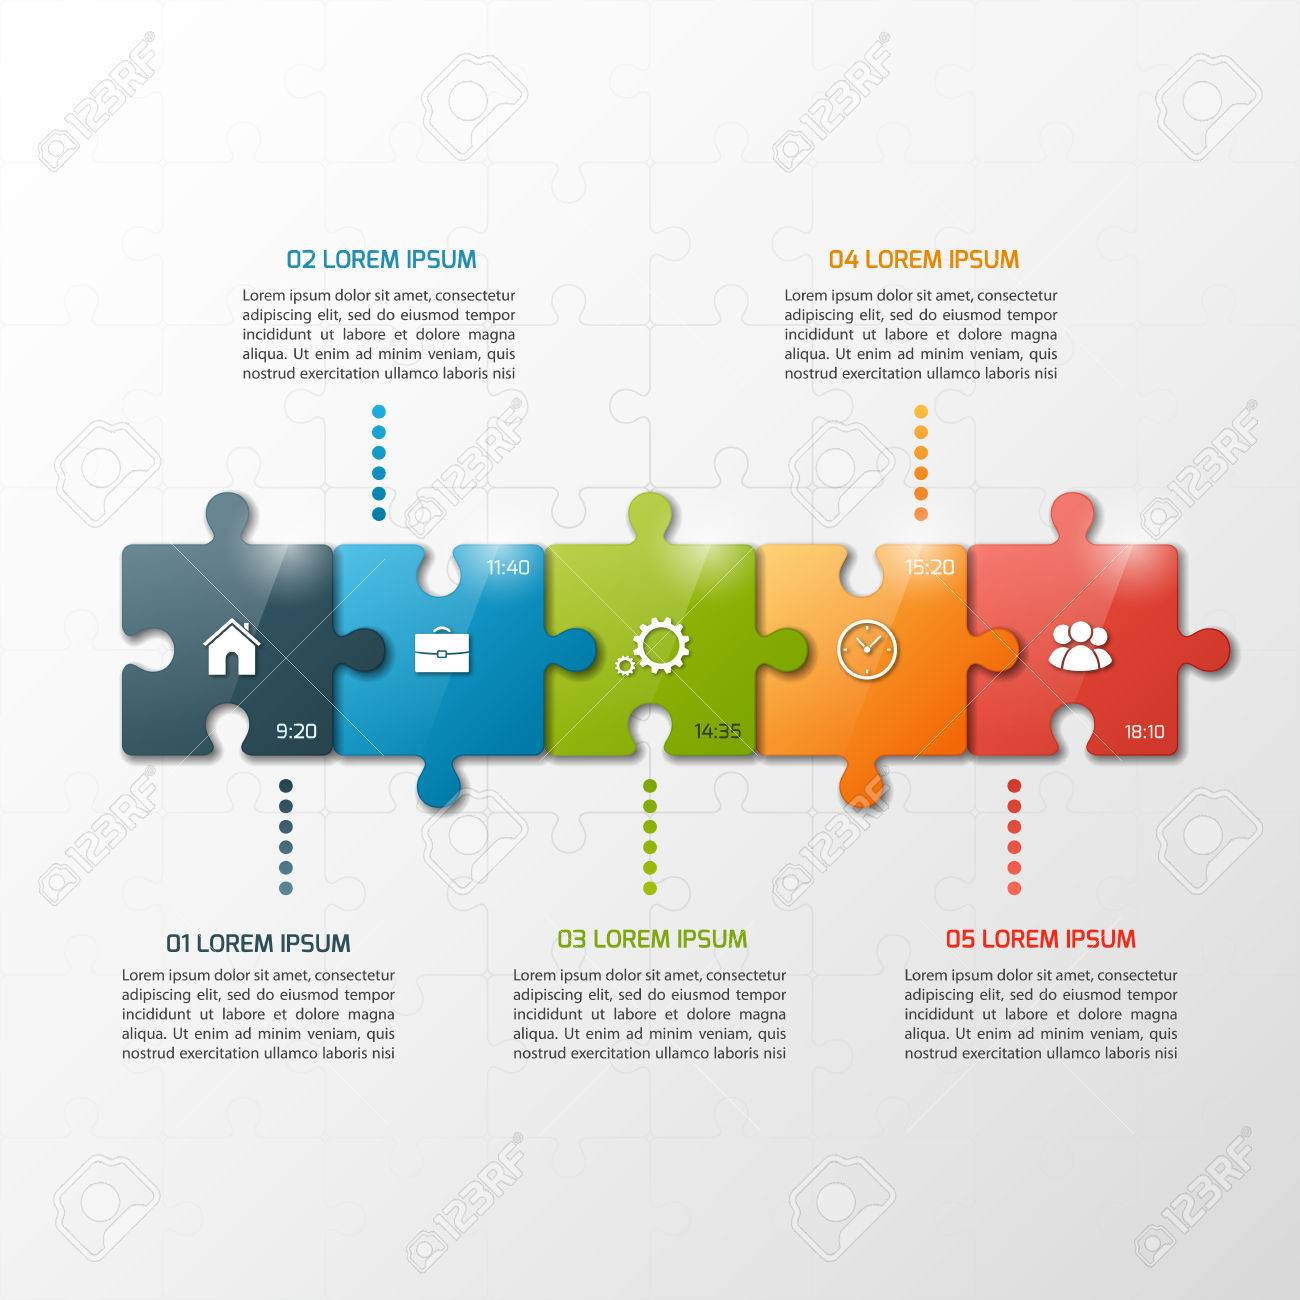 Vector 5 steps puzzle style timeline infographic template. Business concept. - 62145232